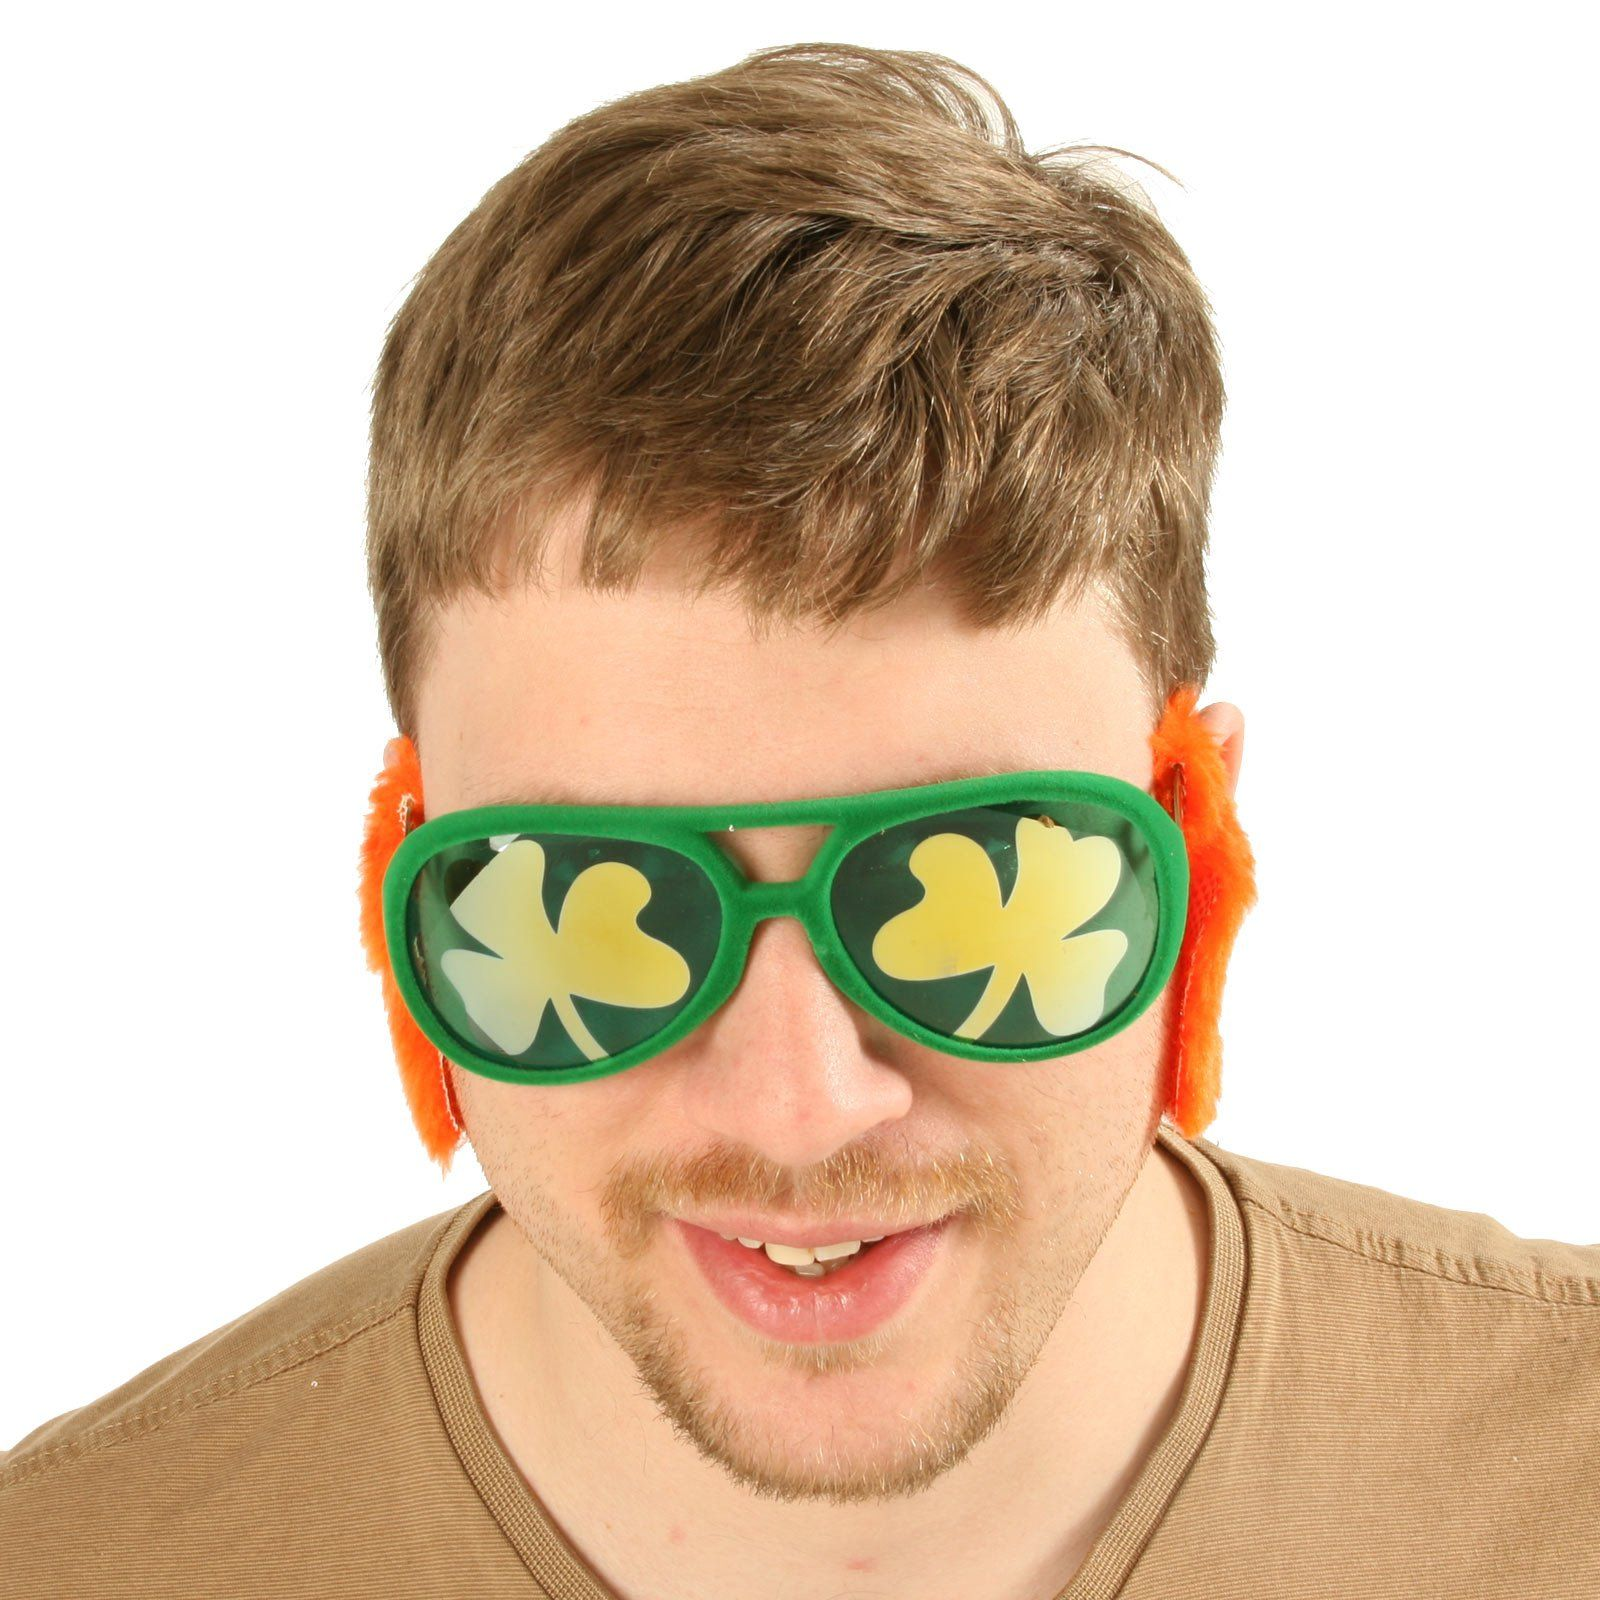 Add some humor to your St. Patricks Day wear by trying these Green Shamrock Glasses with attached orange sideburns. Made of 40% Acrylic 40% Metal and 20% Polyester. Glasses have UV 400 Protection. Frames measure approximately 5.5 across (not including handles). One-Size fits most adults.